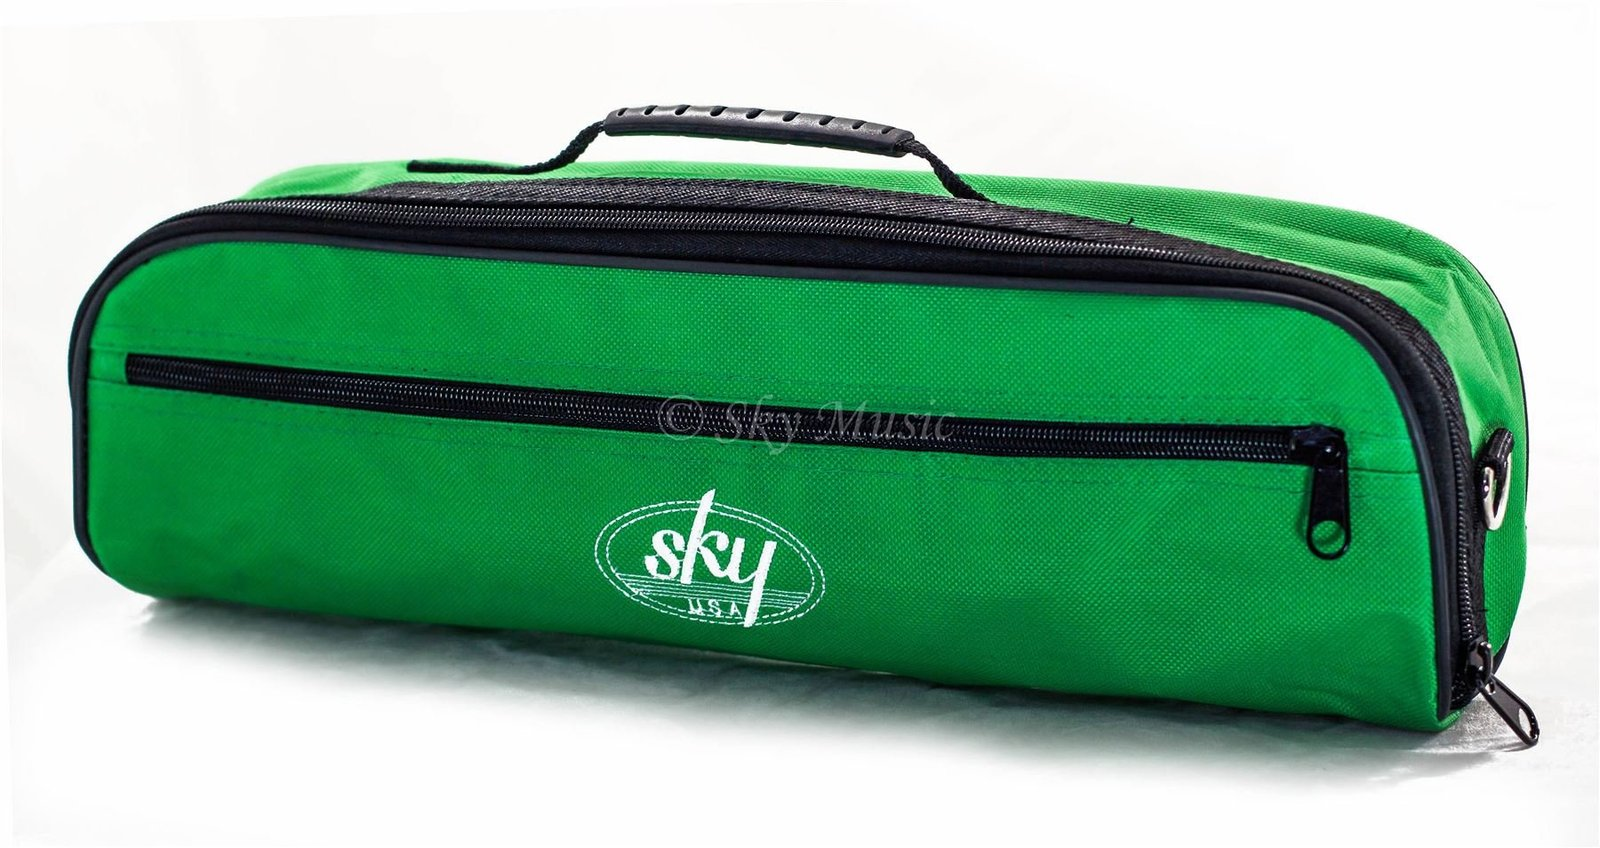 Sky Brand New C Flute Hard Case Cover w Side Pocket/Handle/Strap Green Color